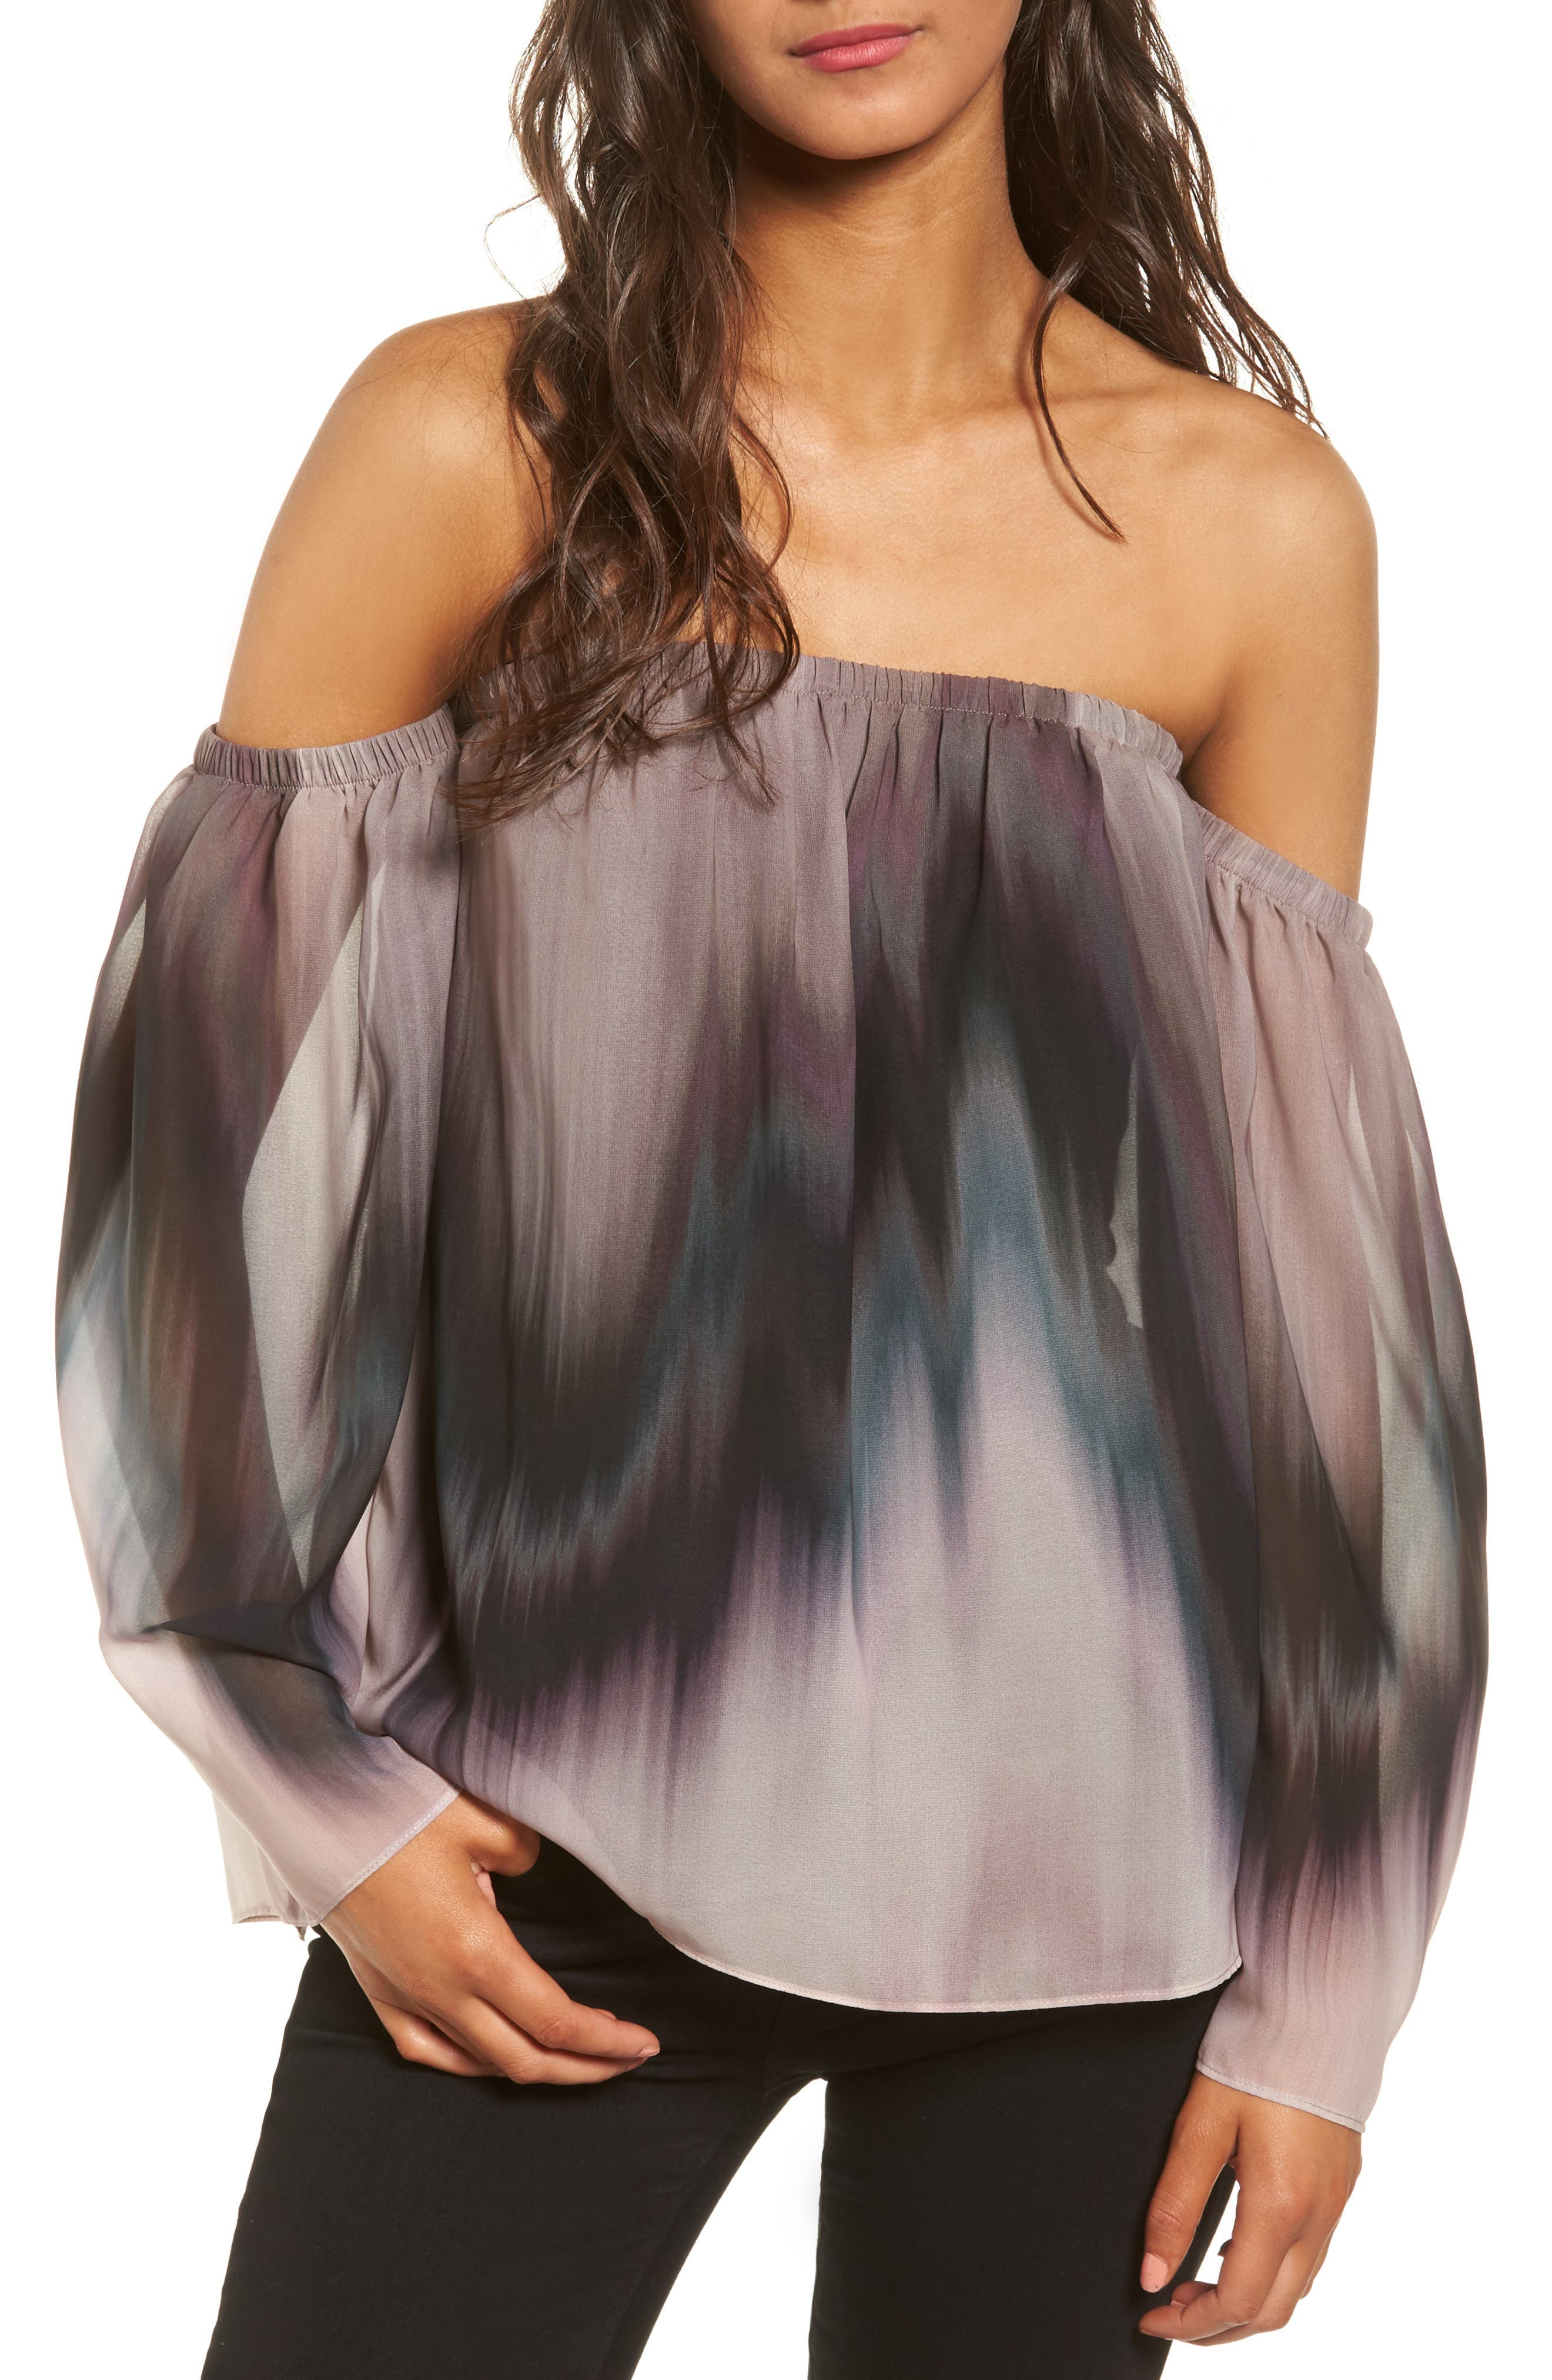 Bailey 44 Grande Jete Off the Shoulder Top